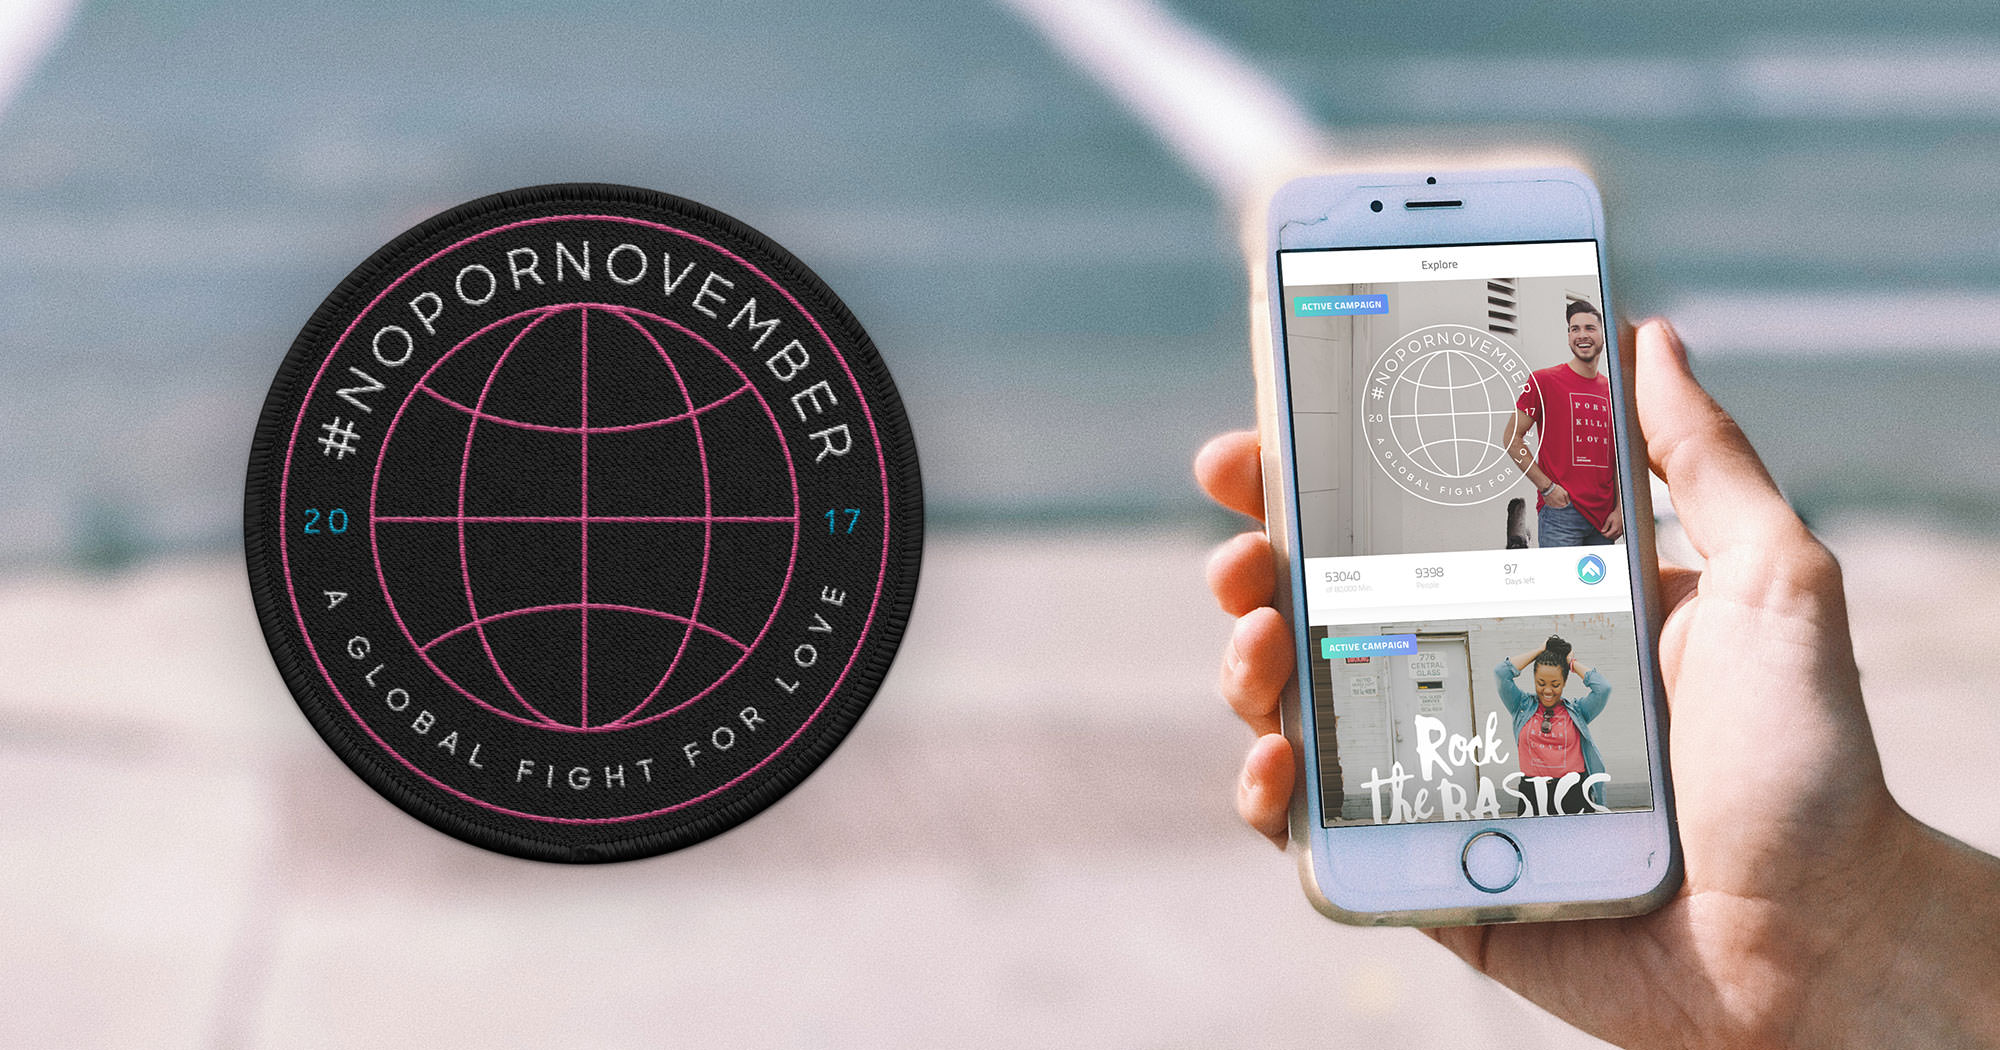 Download Your Official Virtual Passport Here To Join NoPornovember